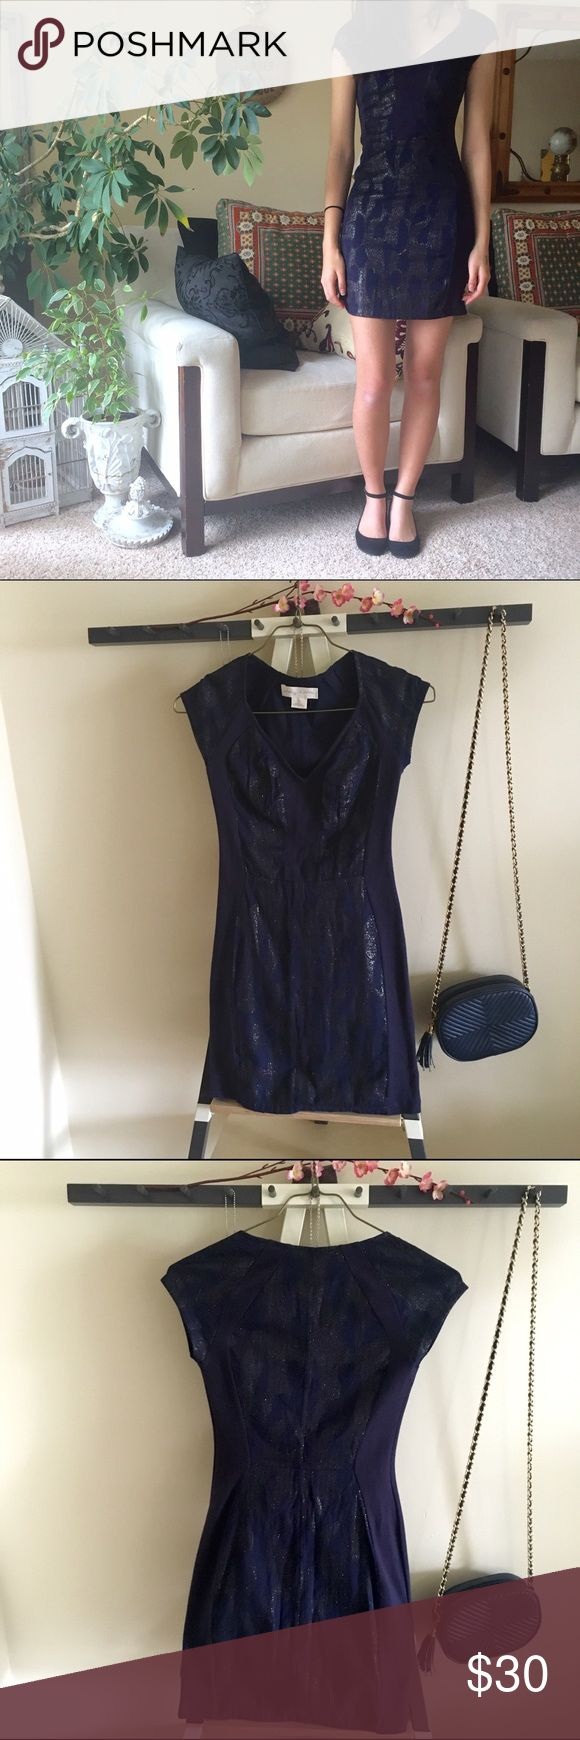 Staring At Stars UO Metallic Bodycon Dress Navy bodycon dress from UO in excellent condition with glitter-embelished panels. Only worn once. Staring at Stars Dresses